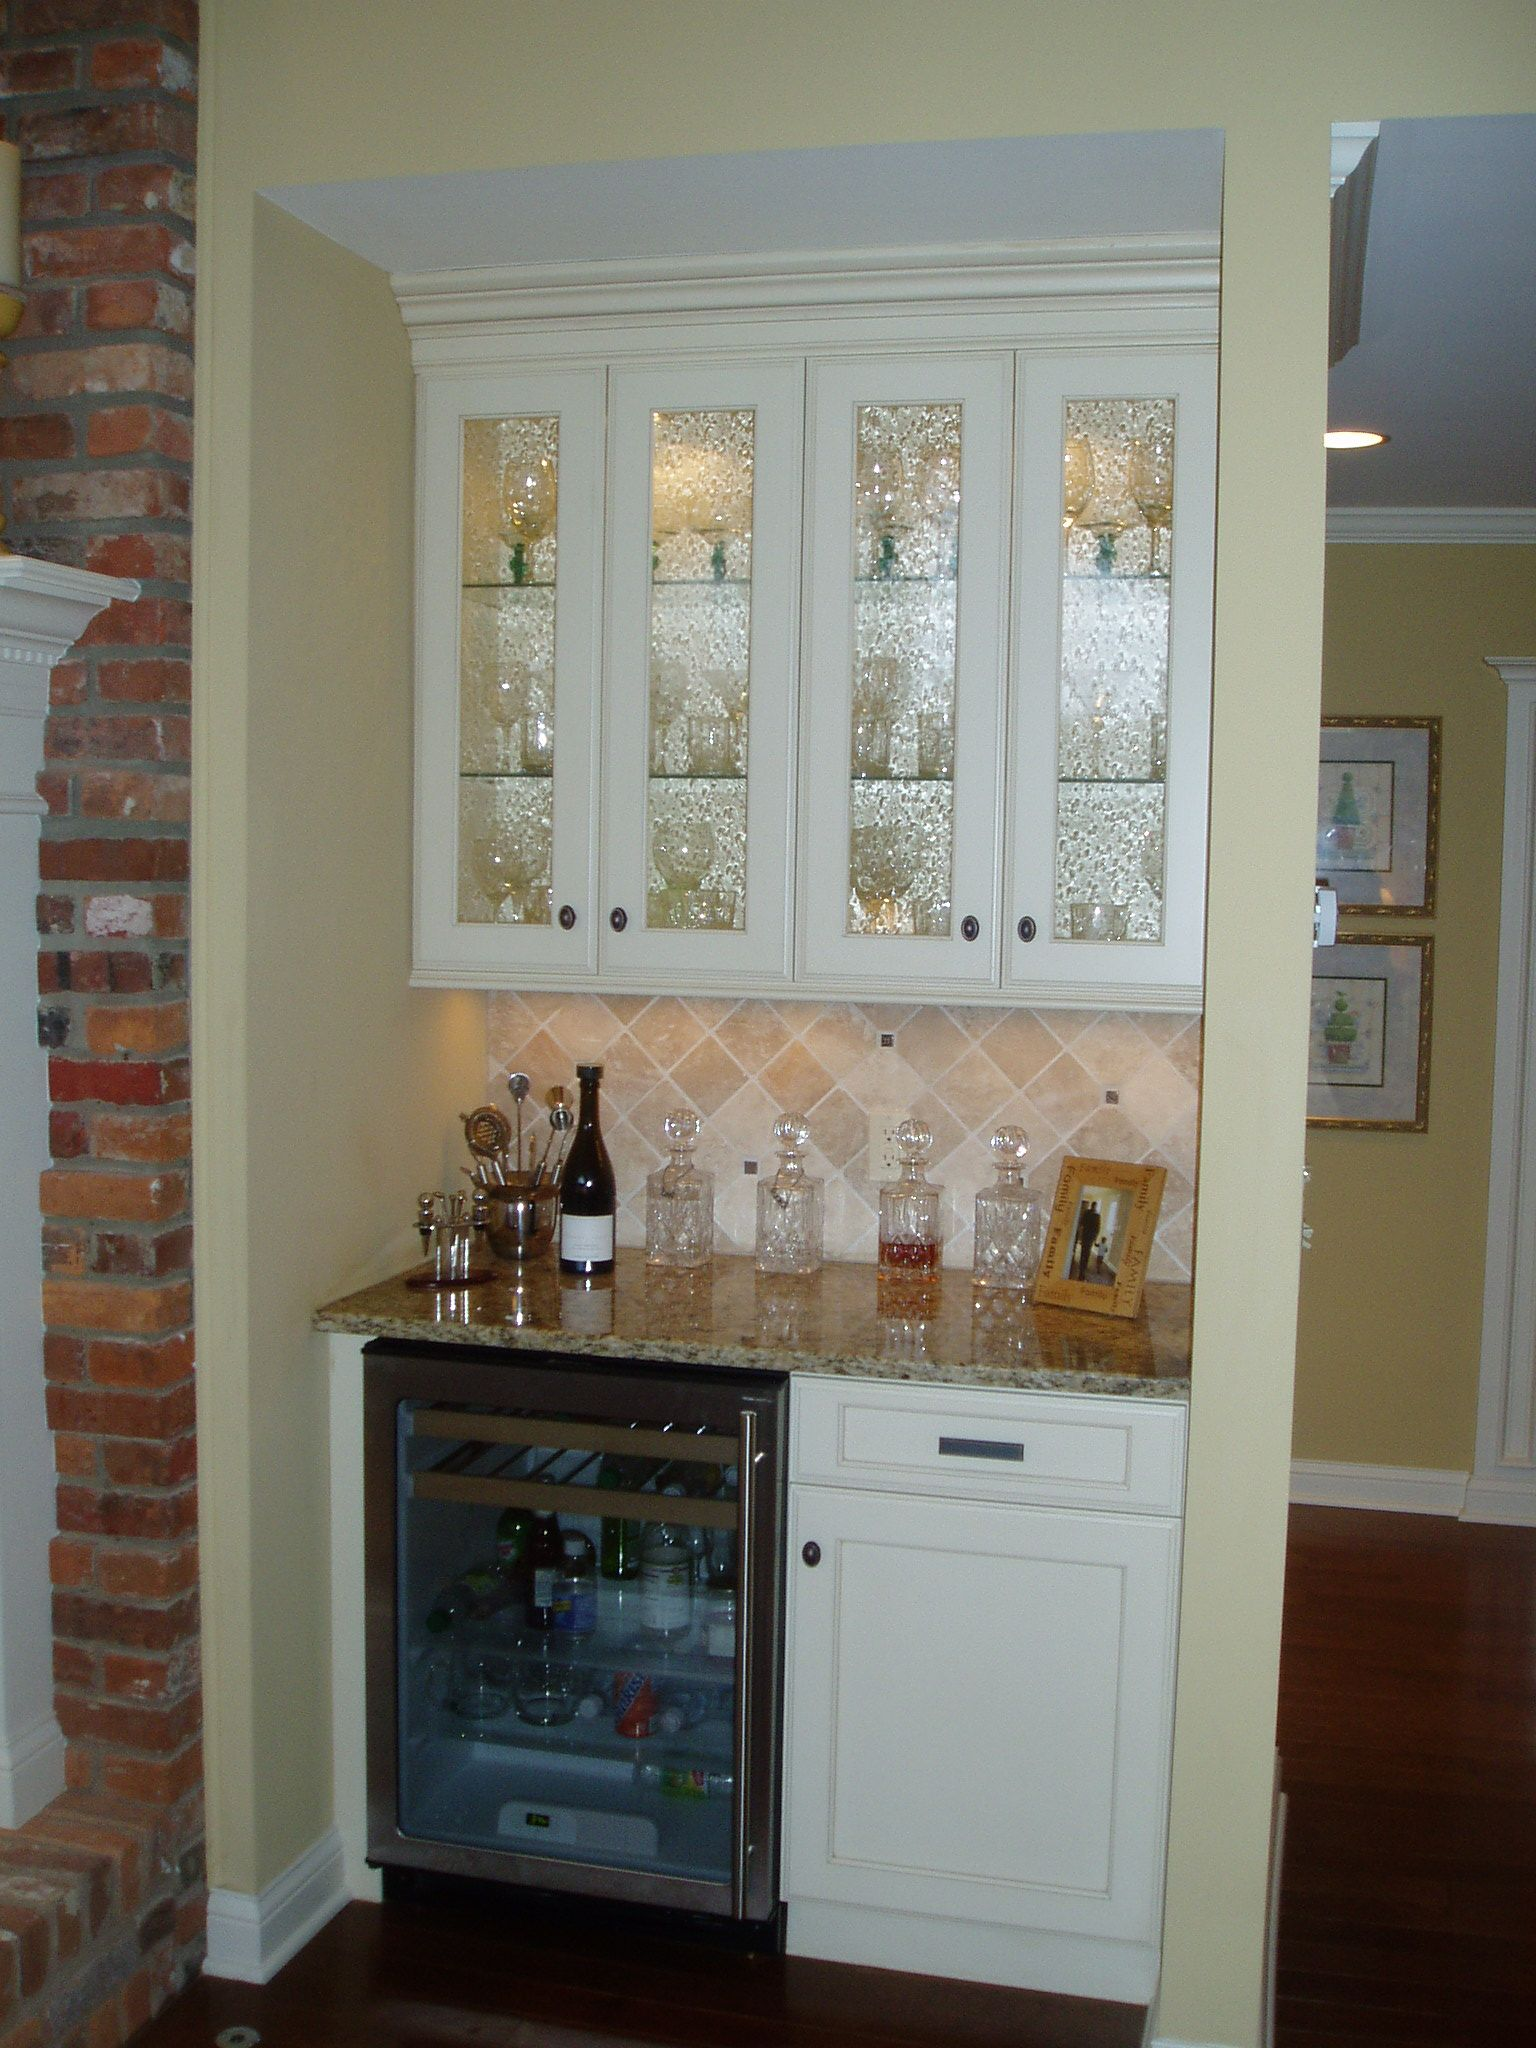 Custom kitchen cabinets columbus oh - Holiday Kitchens Cabinets With Nantucket Painted Finish And A Latte Wash With Seeded Glass Doors